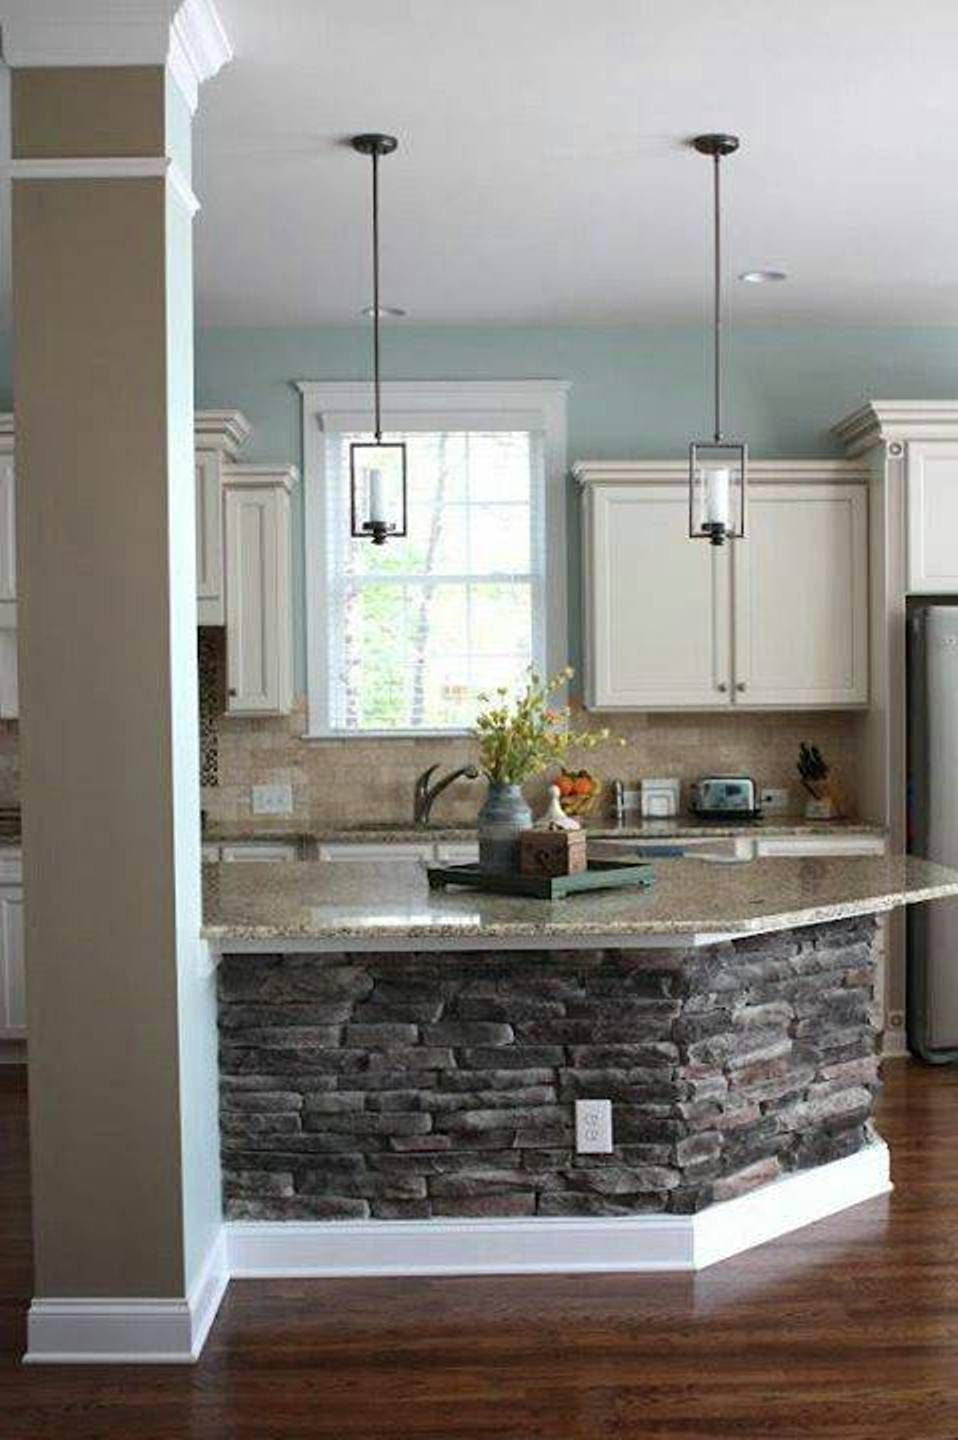 Kitchen Designs With Island From Stone. Like the pillar, the stone ...